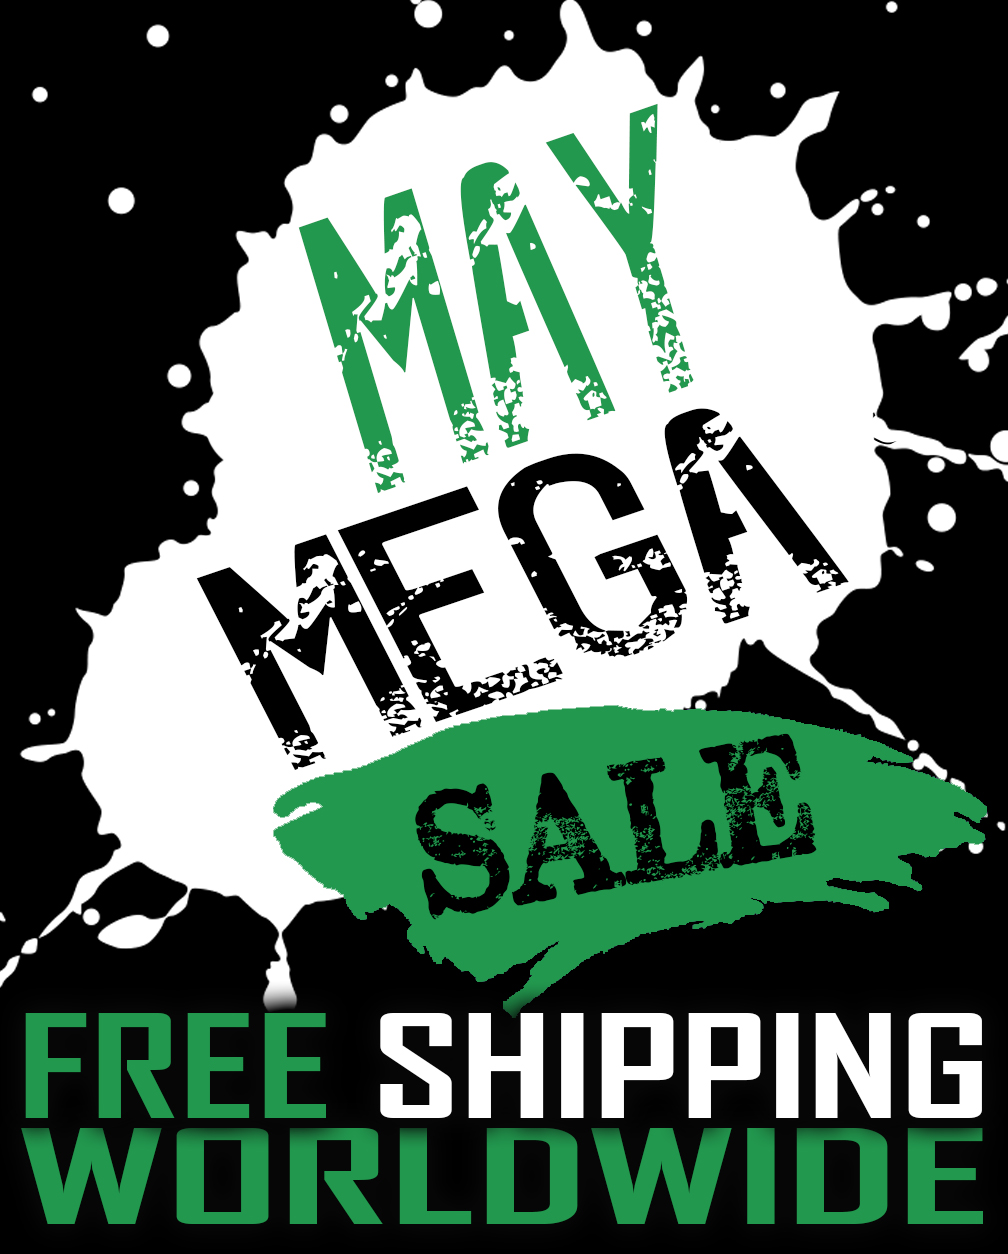 may-mega-sale-free-worldwide-shipping.jpg